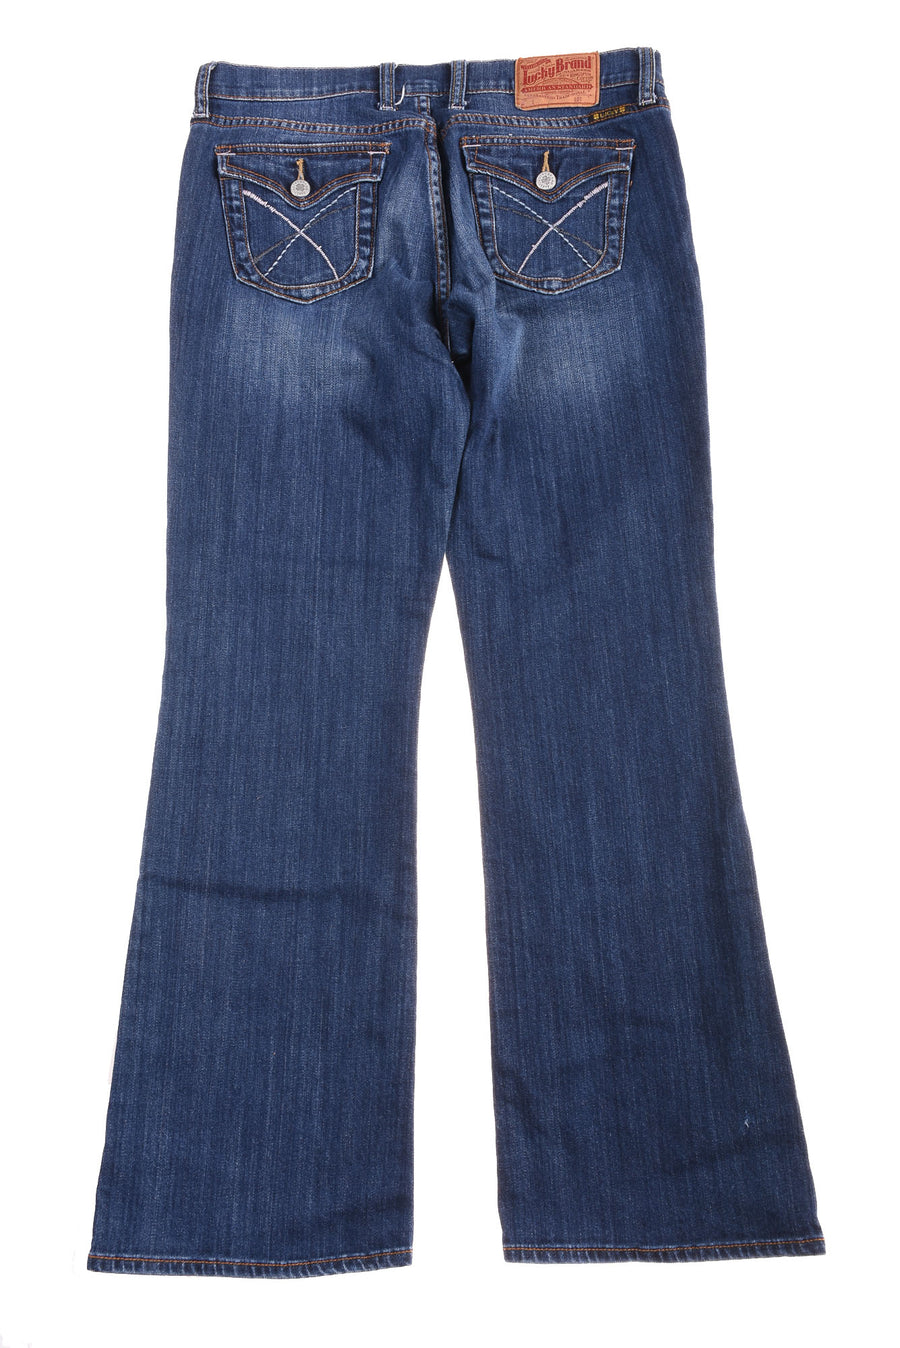 USED Lucky Brand Women's Jeans 8/29 Blue